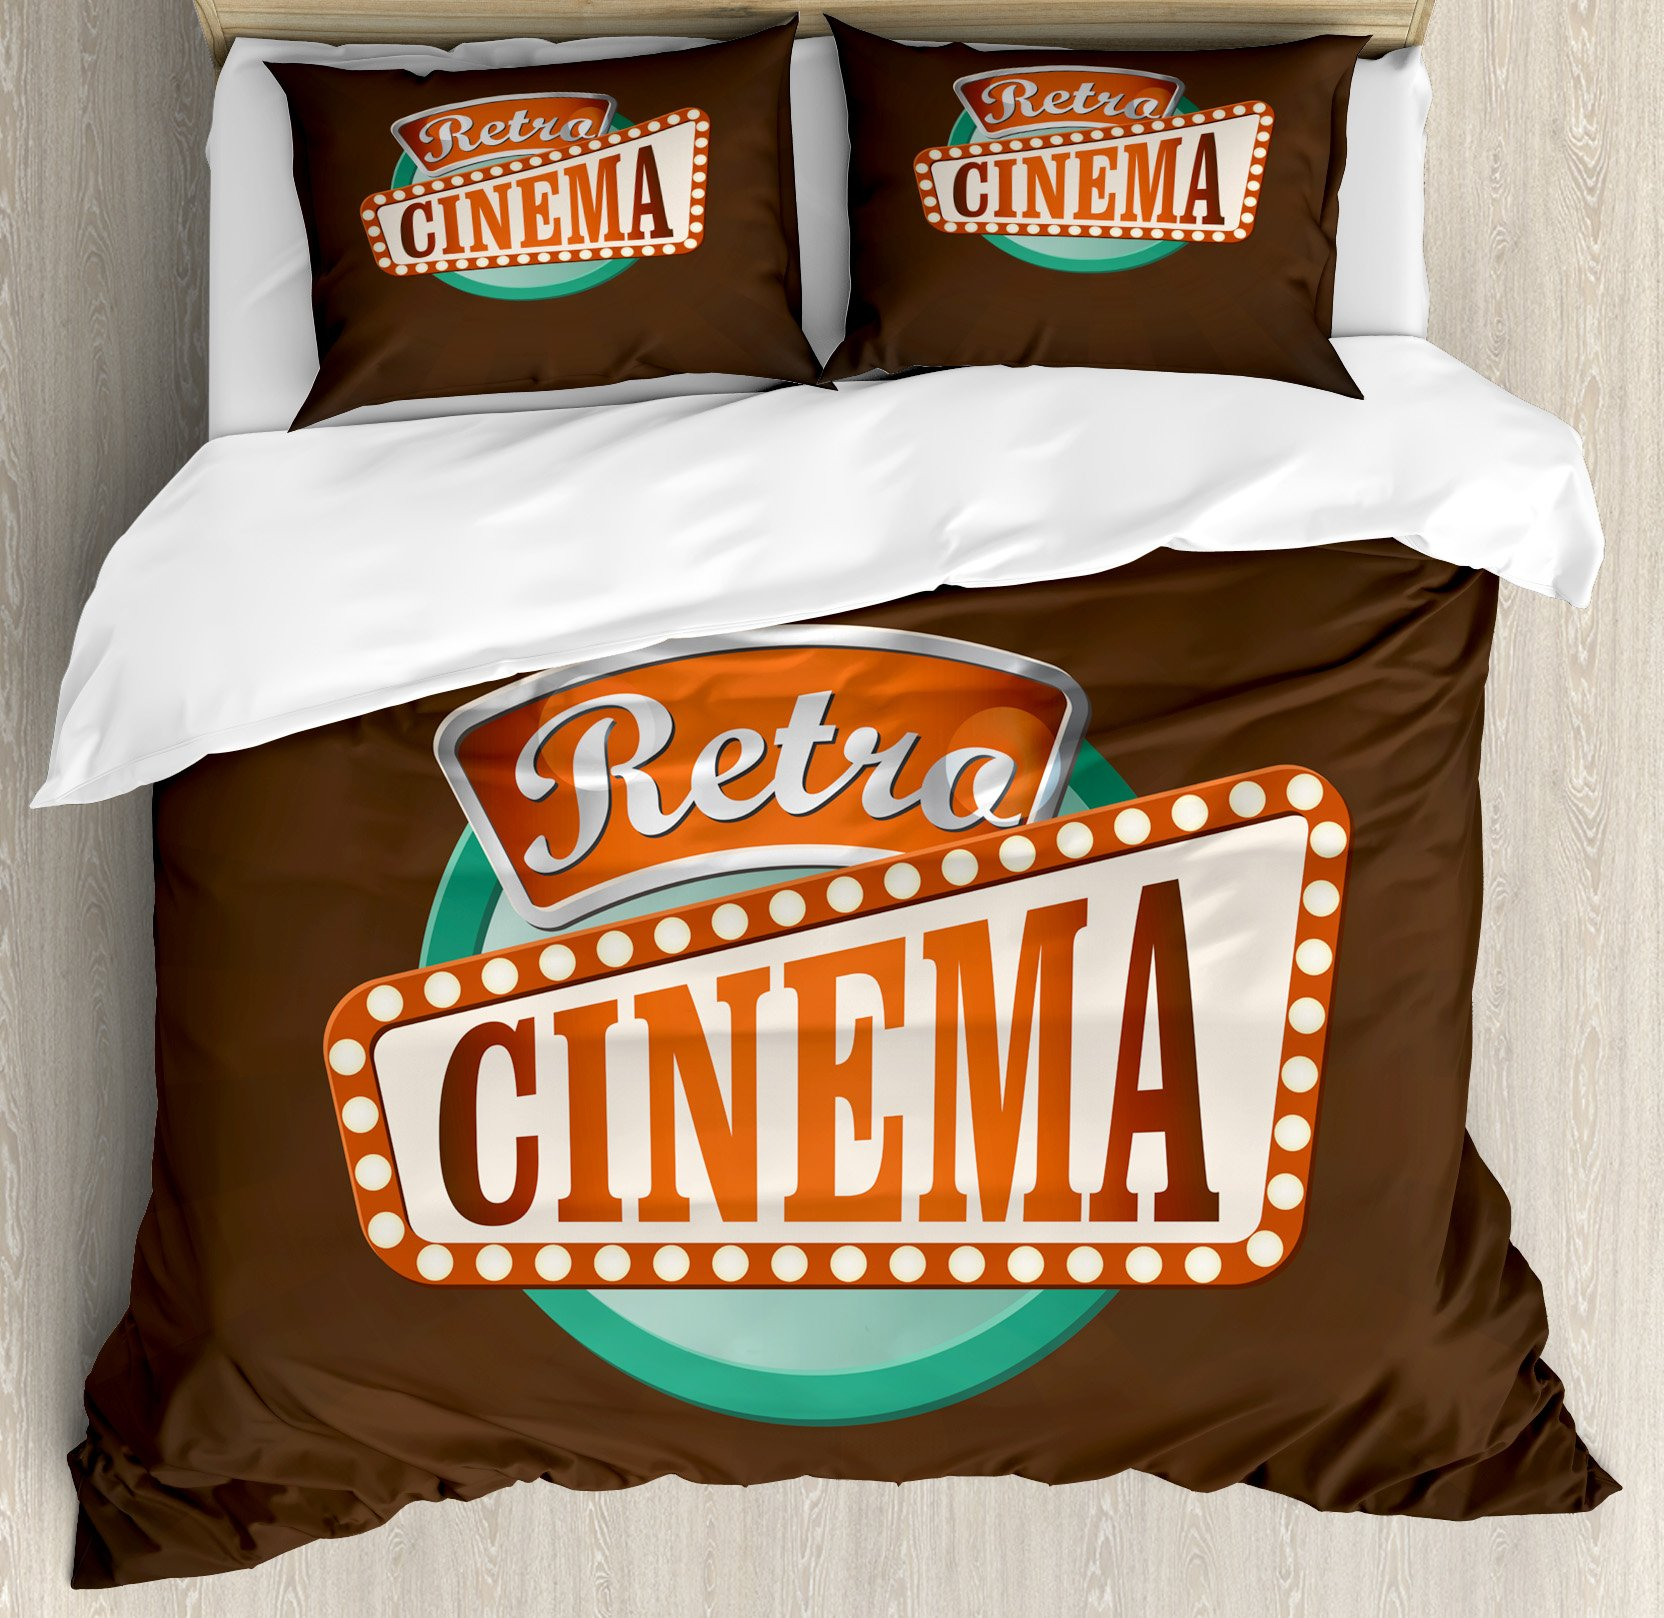 Ambesonne Movie Theater Queen Size Duvet Cover Set, Retro Style Cinema Sign Design Film Festival Hollywood Theme, Decorative 3 Piece Bedding Set with 2 Pillow Shams, Brown Turquoise Vermilion